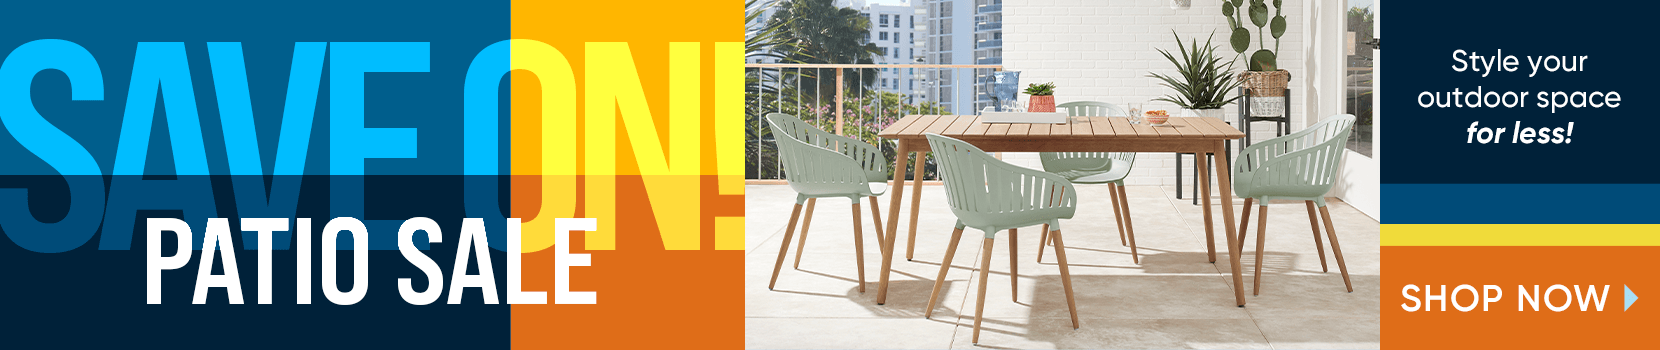 save on patio sale. style your outdoor space for less. shop now